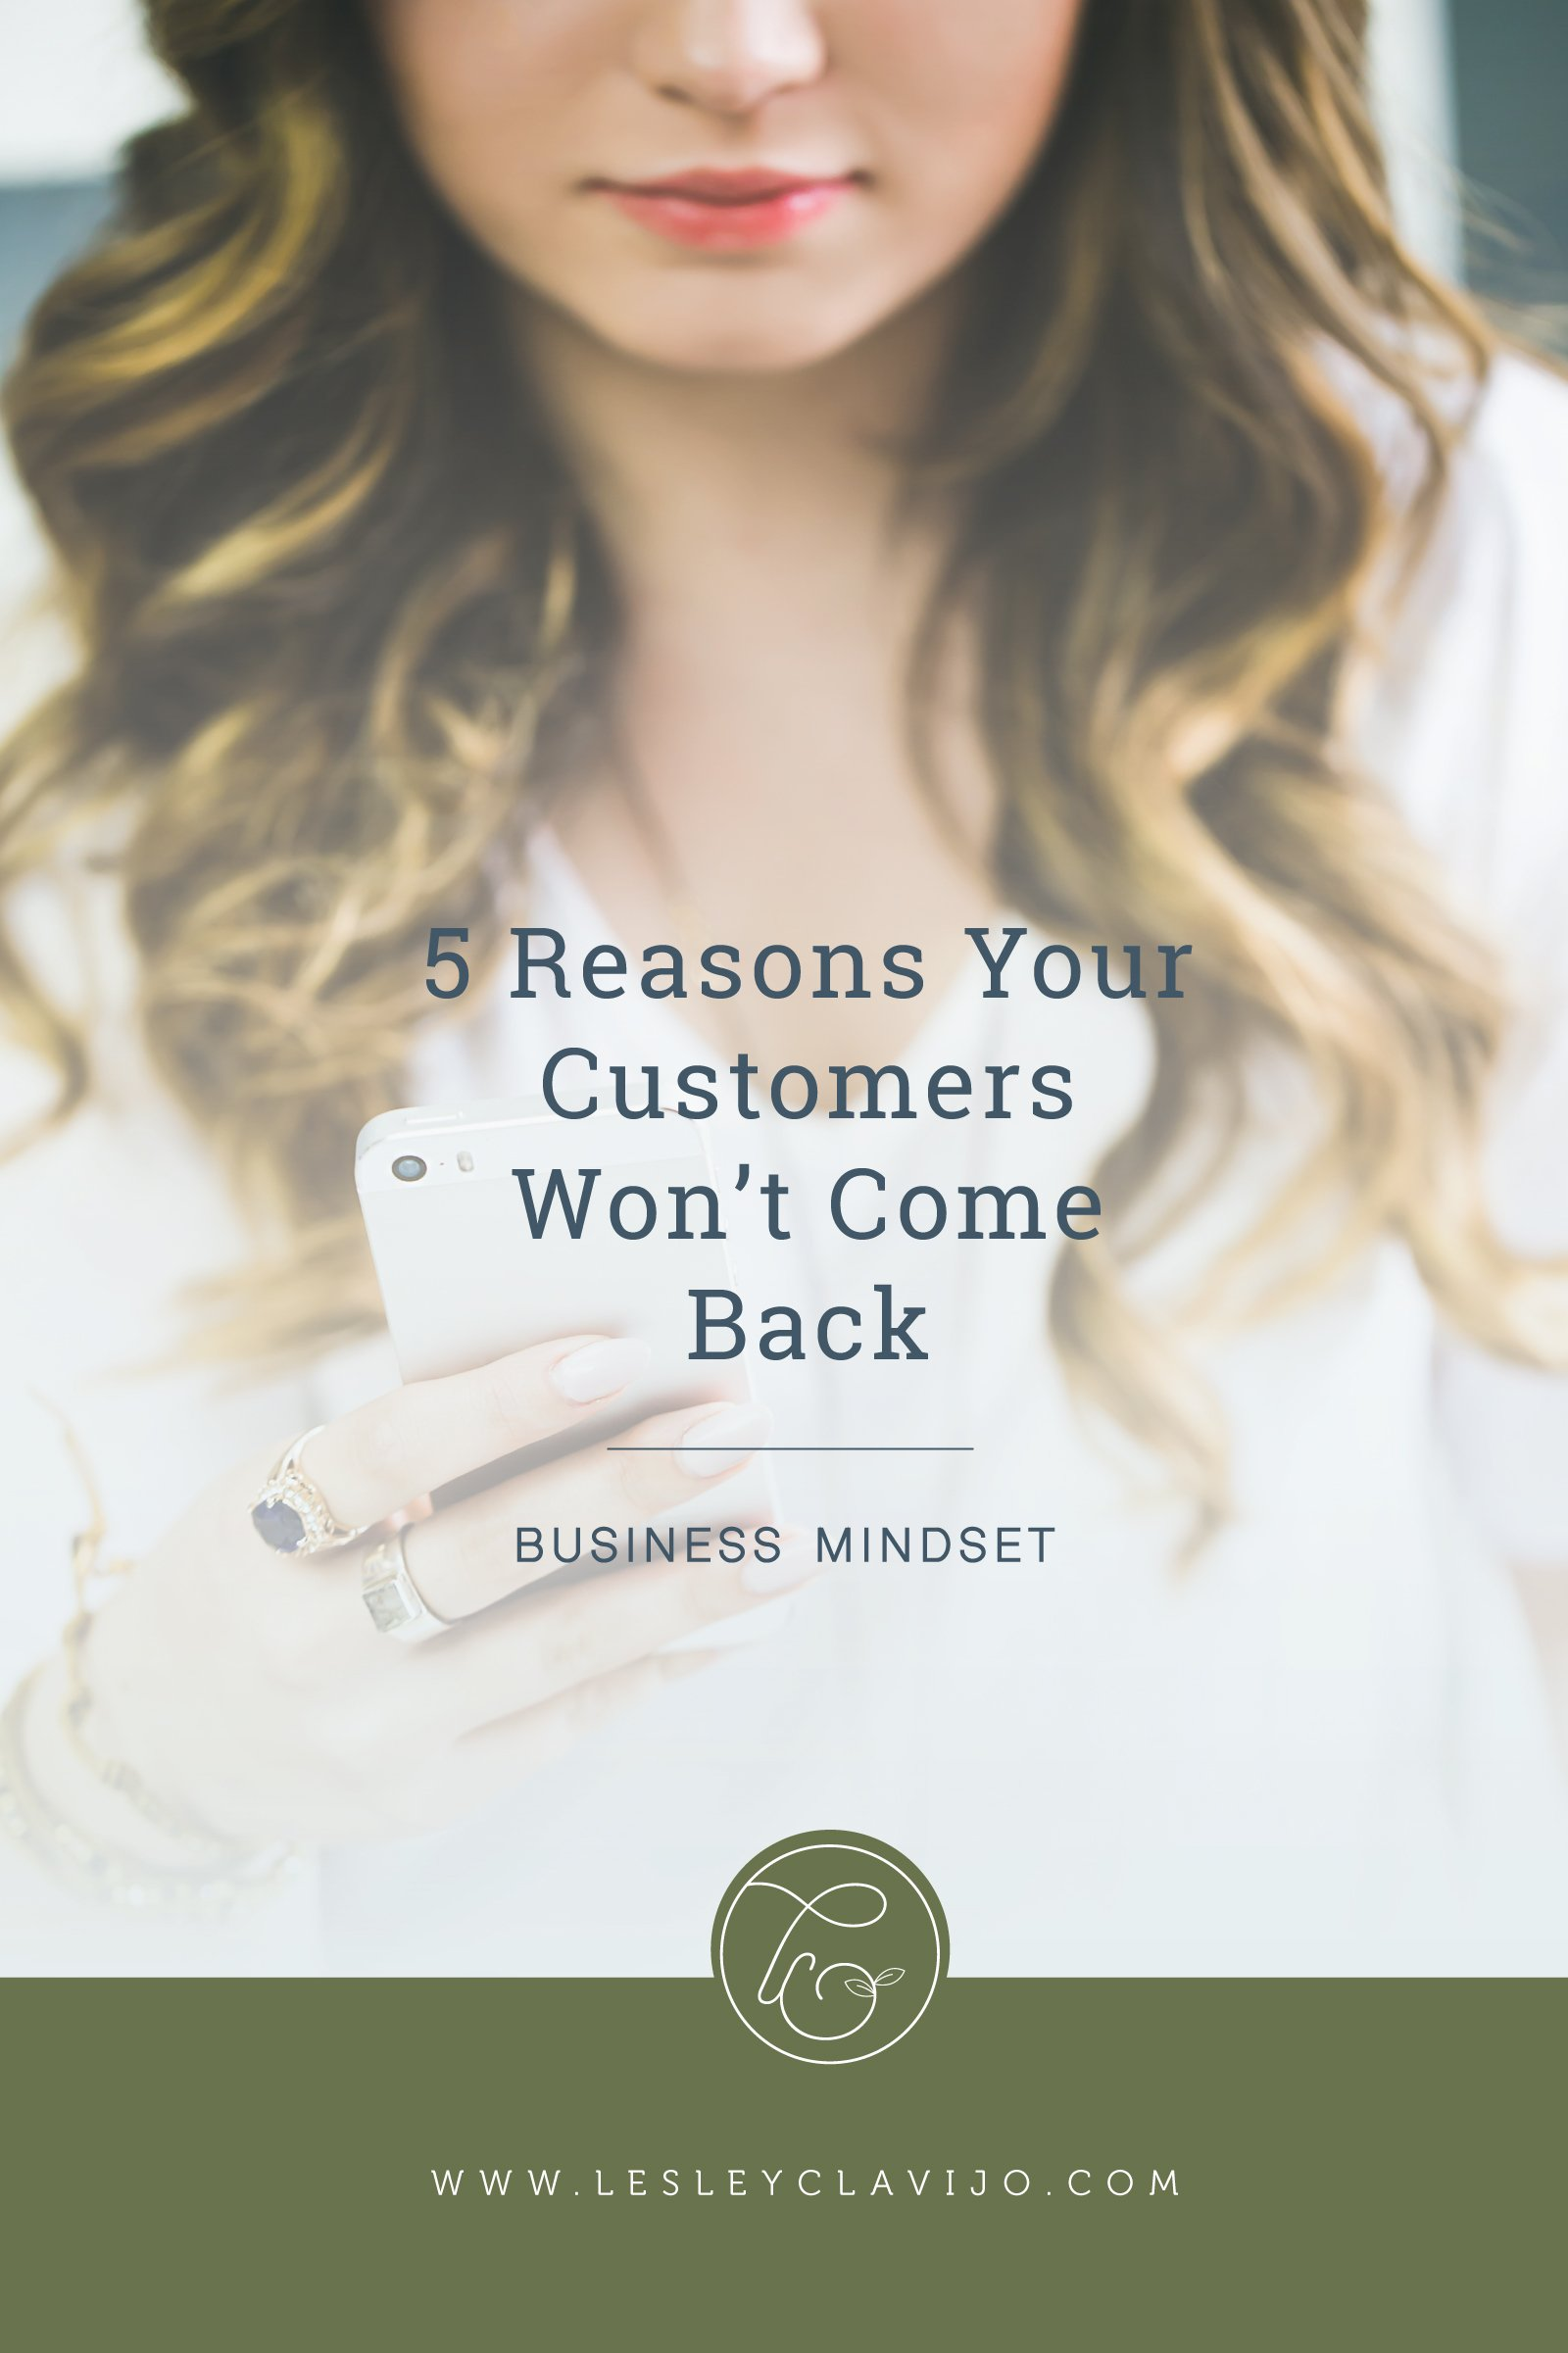 5 Reasons Your Customers Won't Come Back